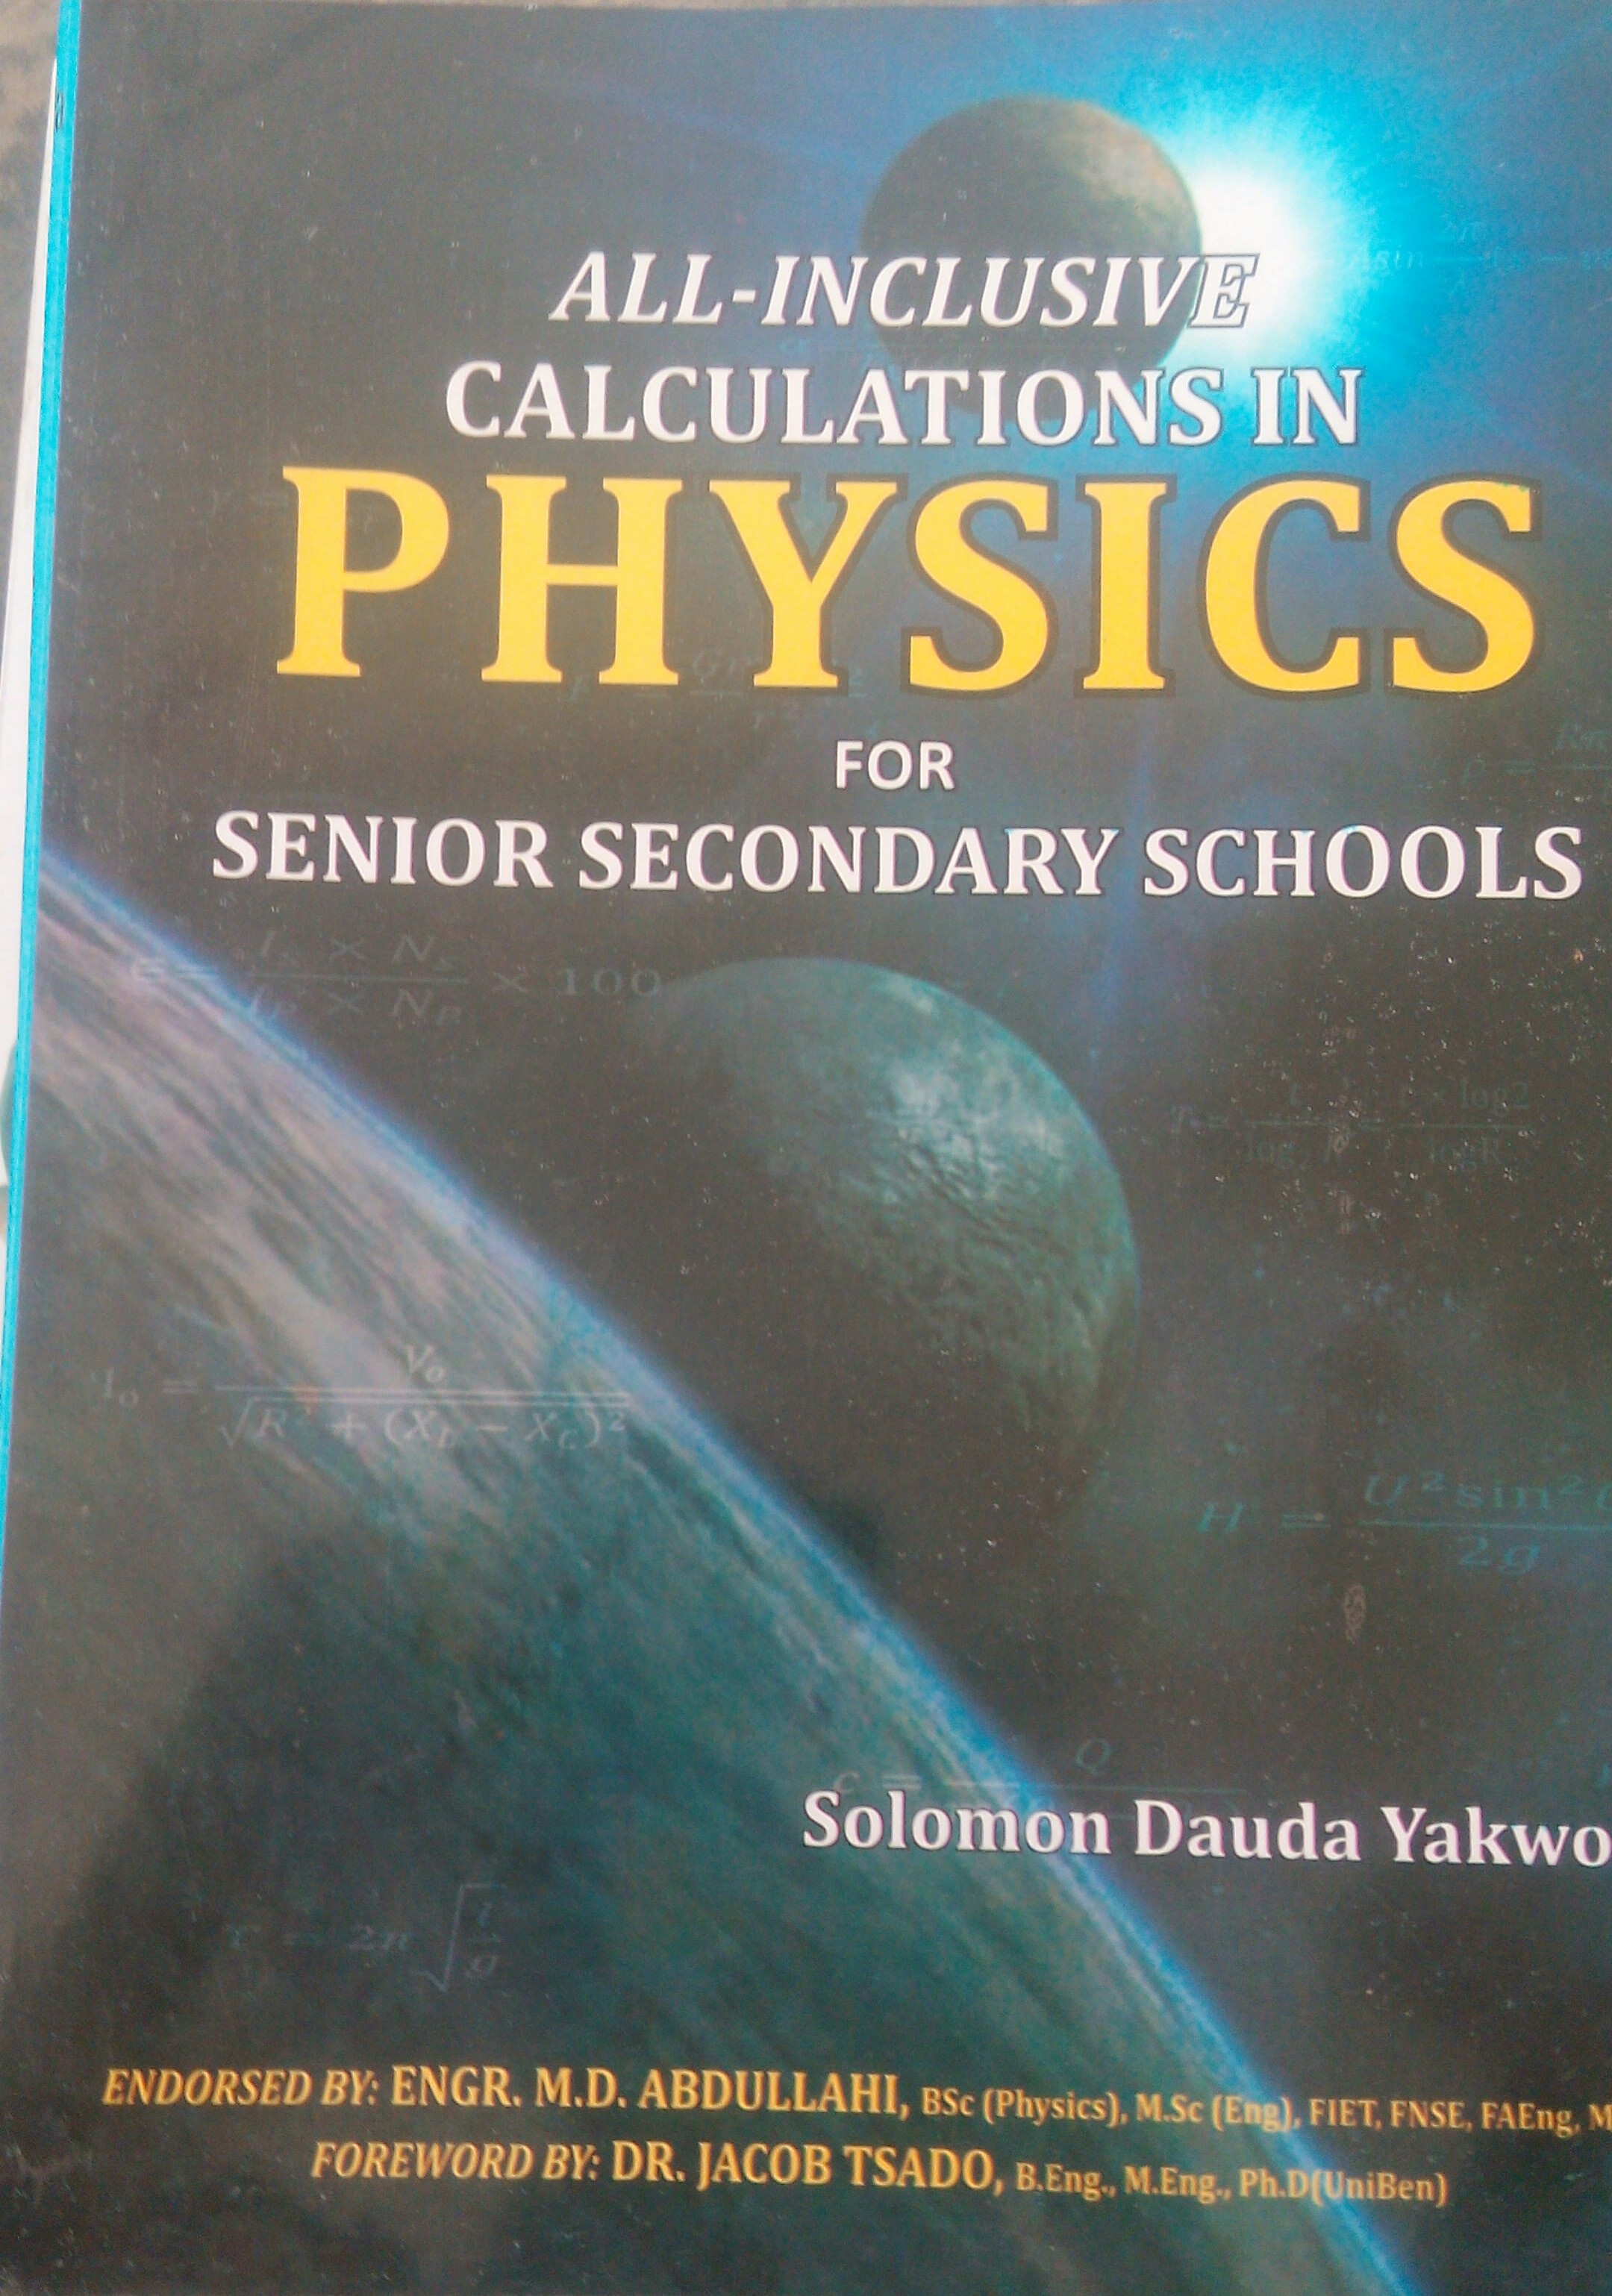 All-Inclusive Calculations in Physics for Senior Secondary Schools